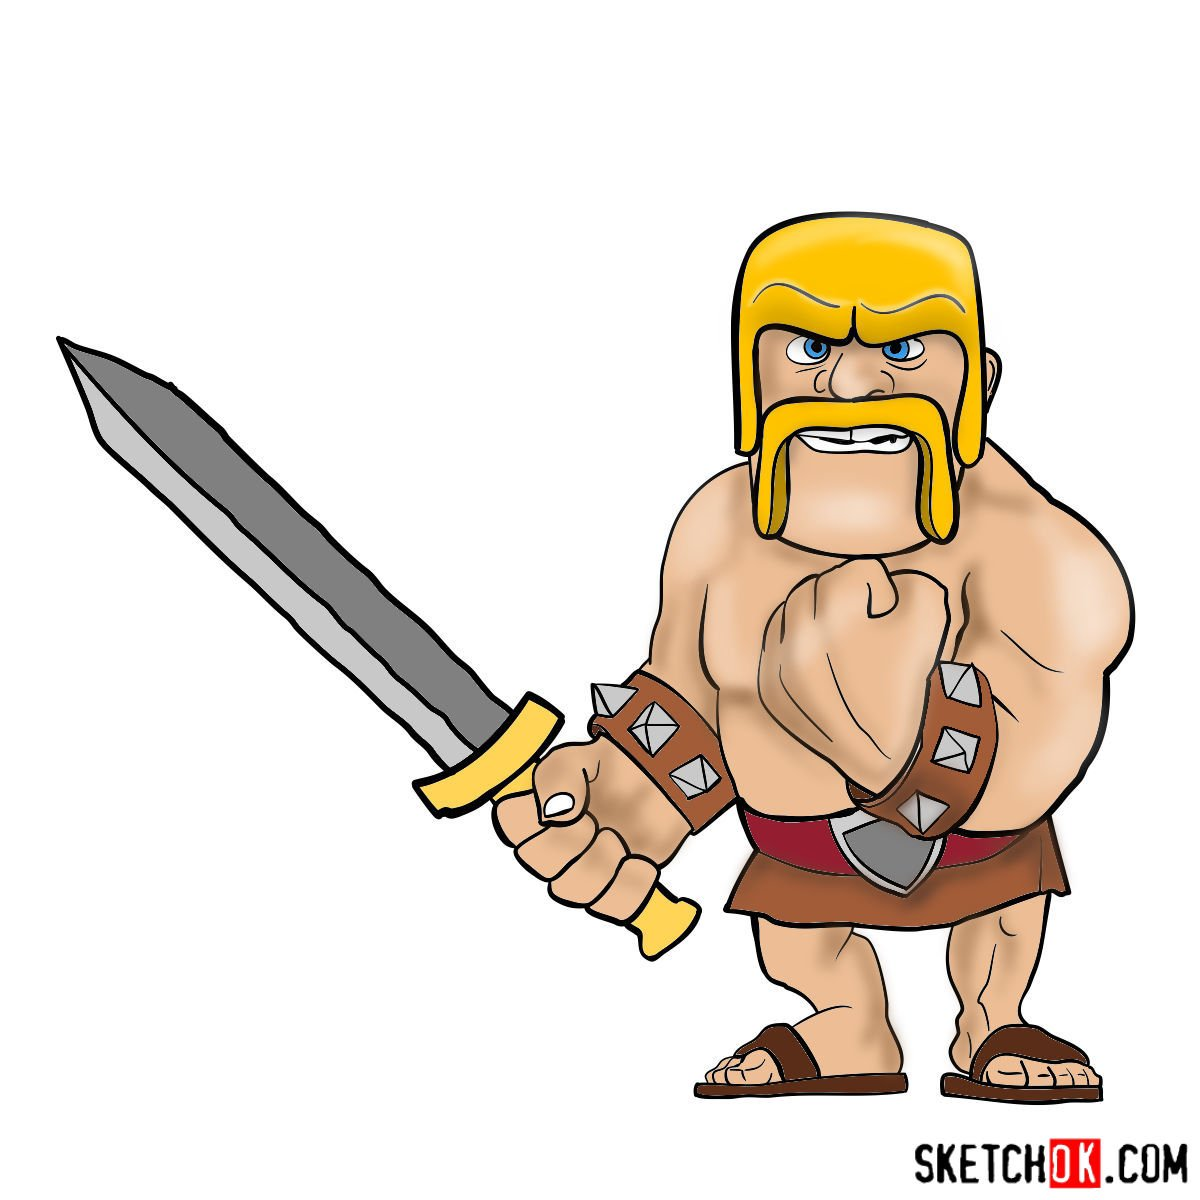 How to draw Barbarian from Clash of Clans